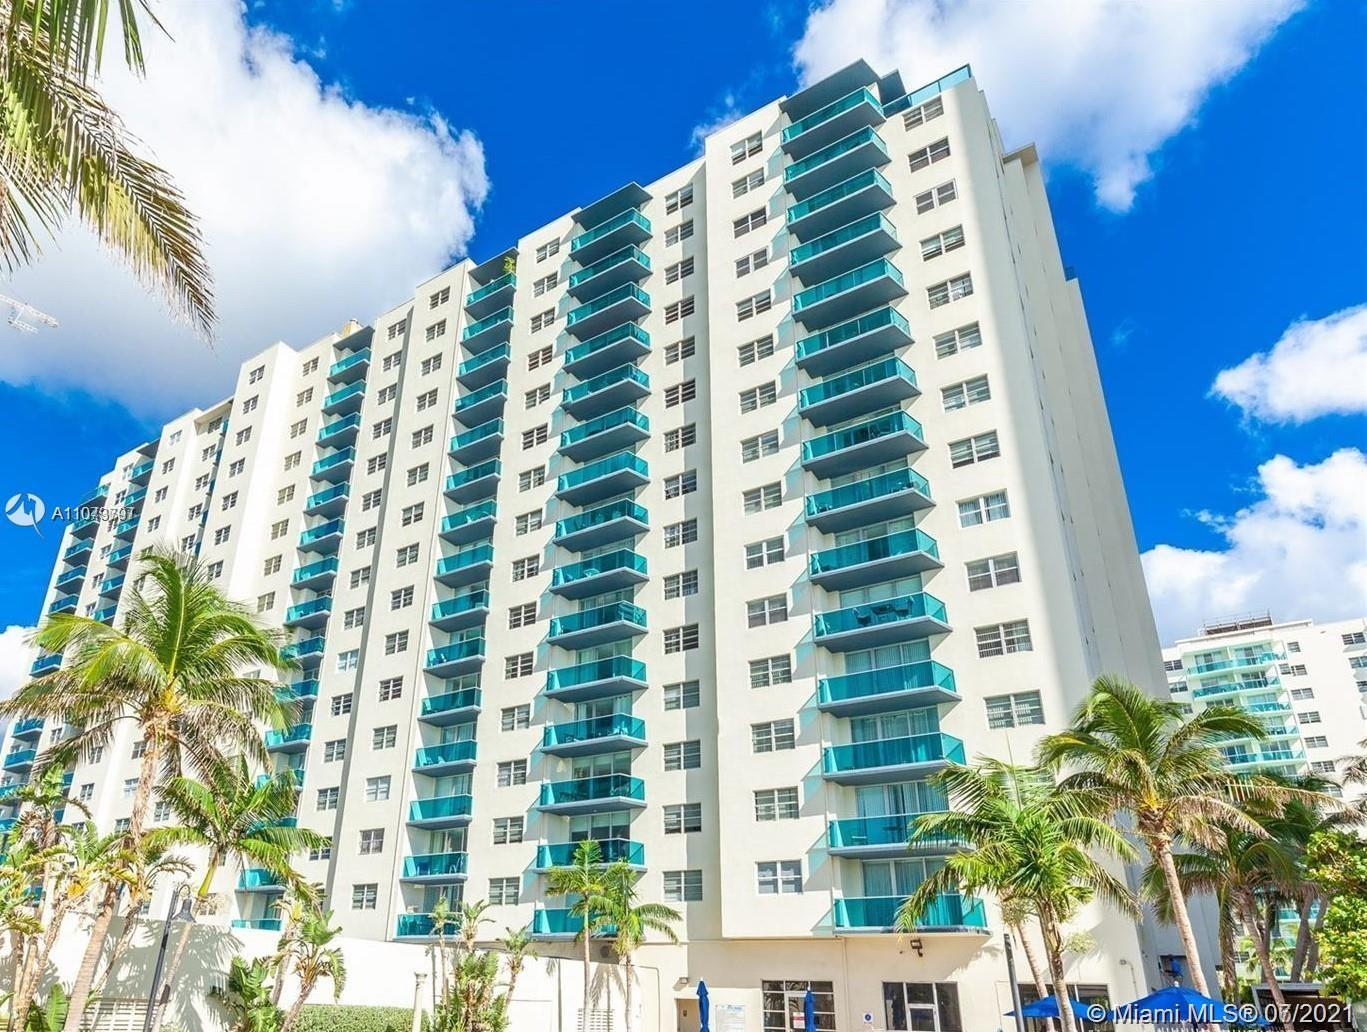 INVESTOR's DREAM !!!! Beautiful, bright and spacious 1 bedroom/1.5 bathrooms in a Resort Style Ocean